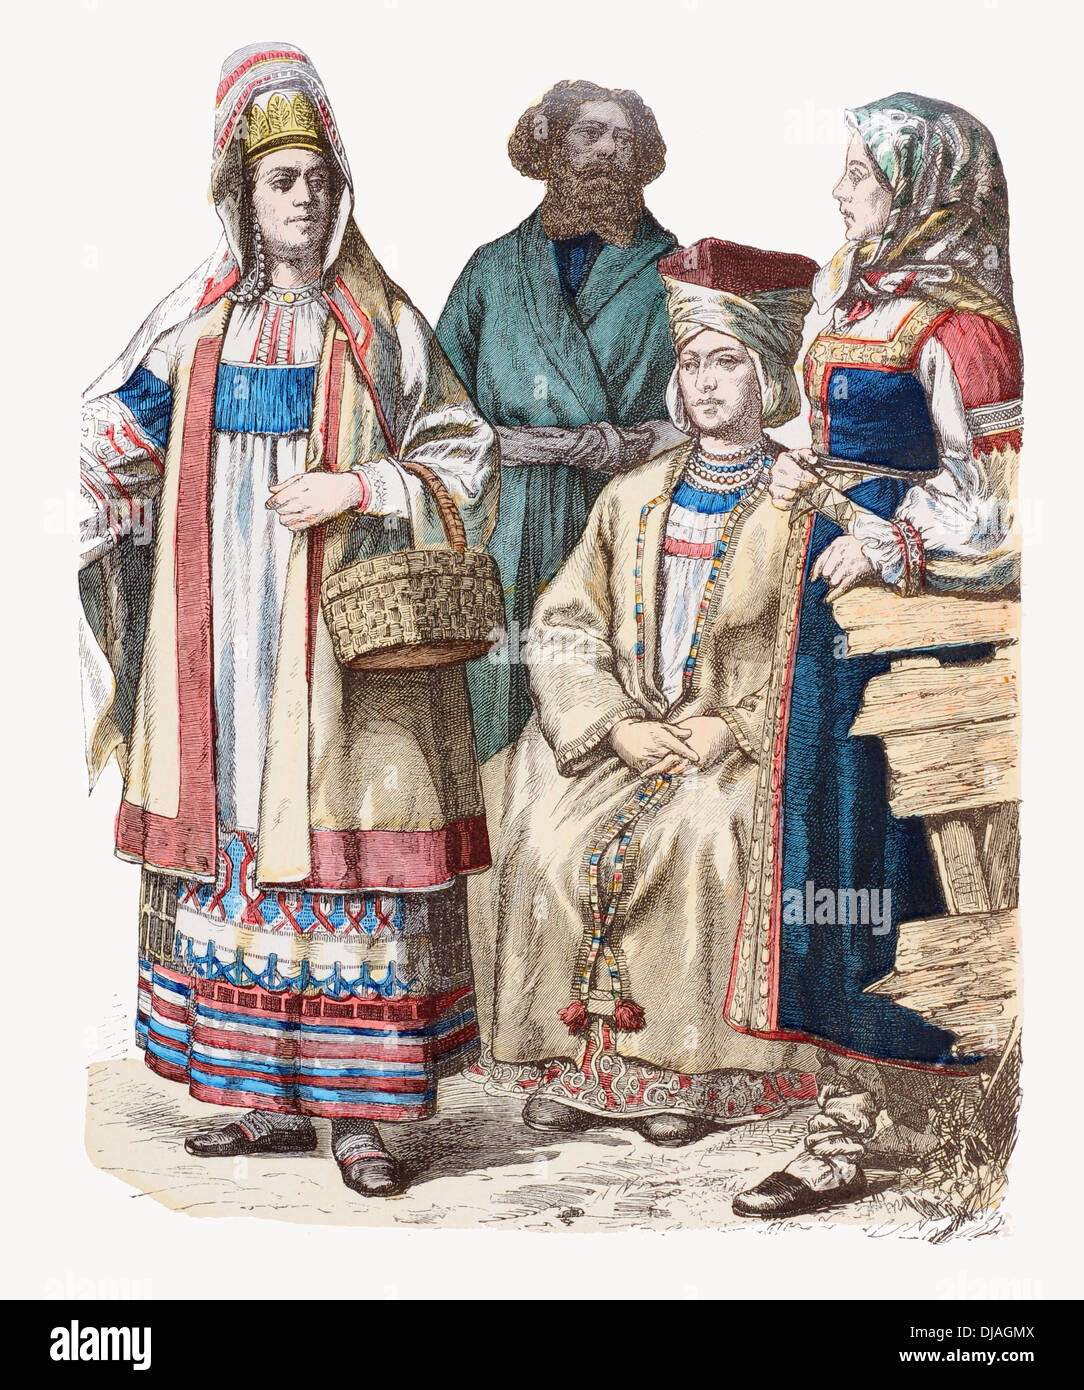 19th century XIX Russia Left to right Lady of Riazan, Woronesh man, Lady of Finland and Woman from Petersburg - Stock Image